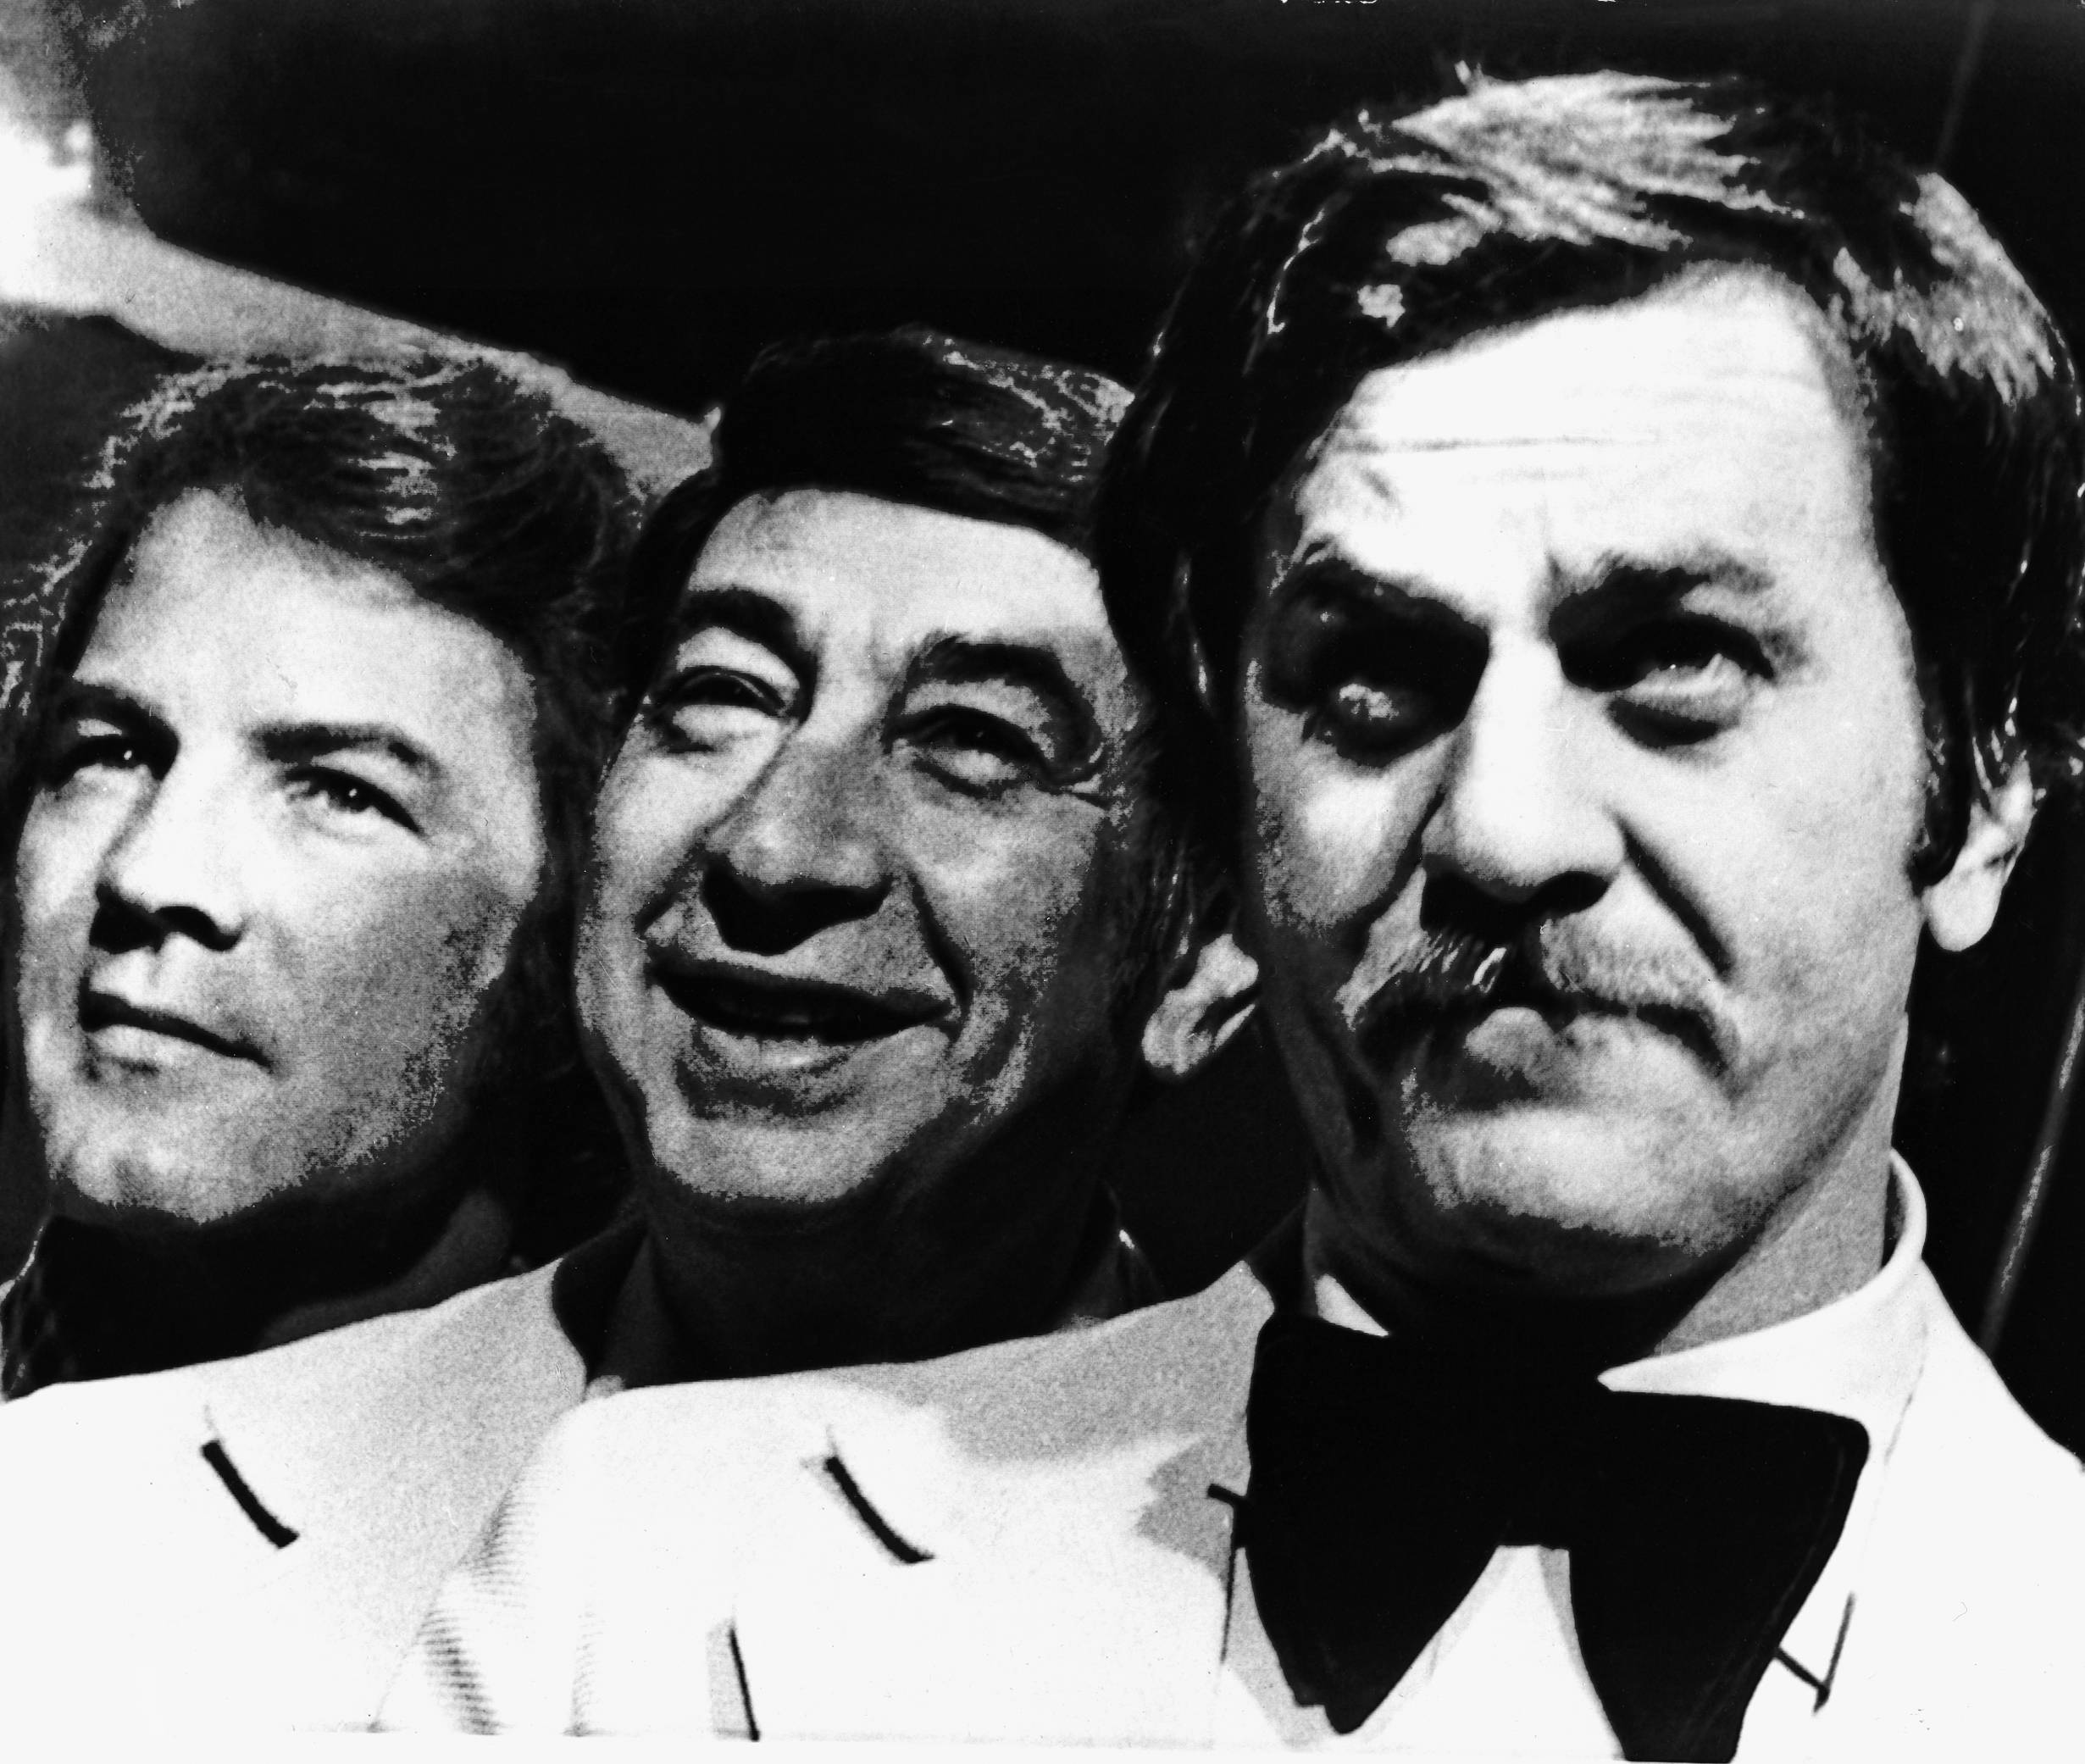 This Nov. 20, 1973, file photo shows, from left, Frank Gifford, Howard Cosell and Don Meredith, before the start of their ABC-TV football telecast.